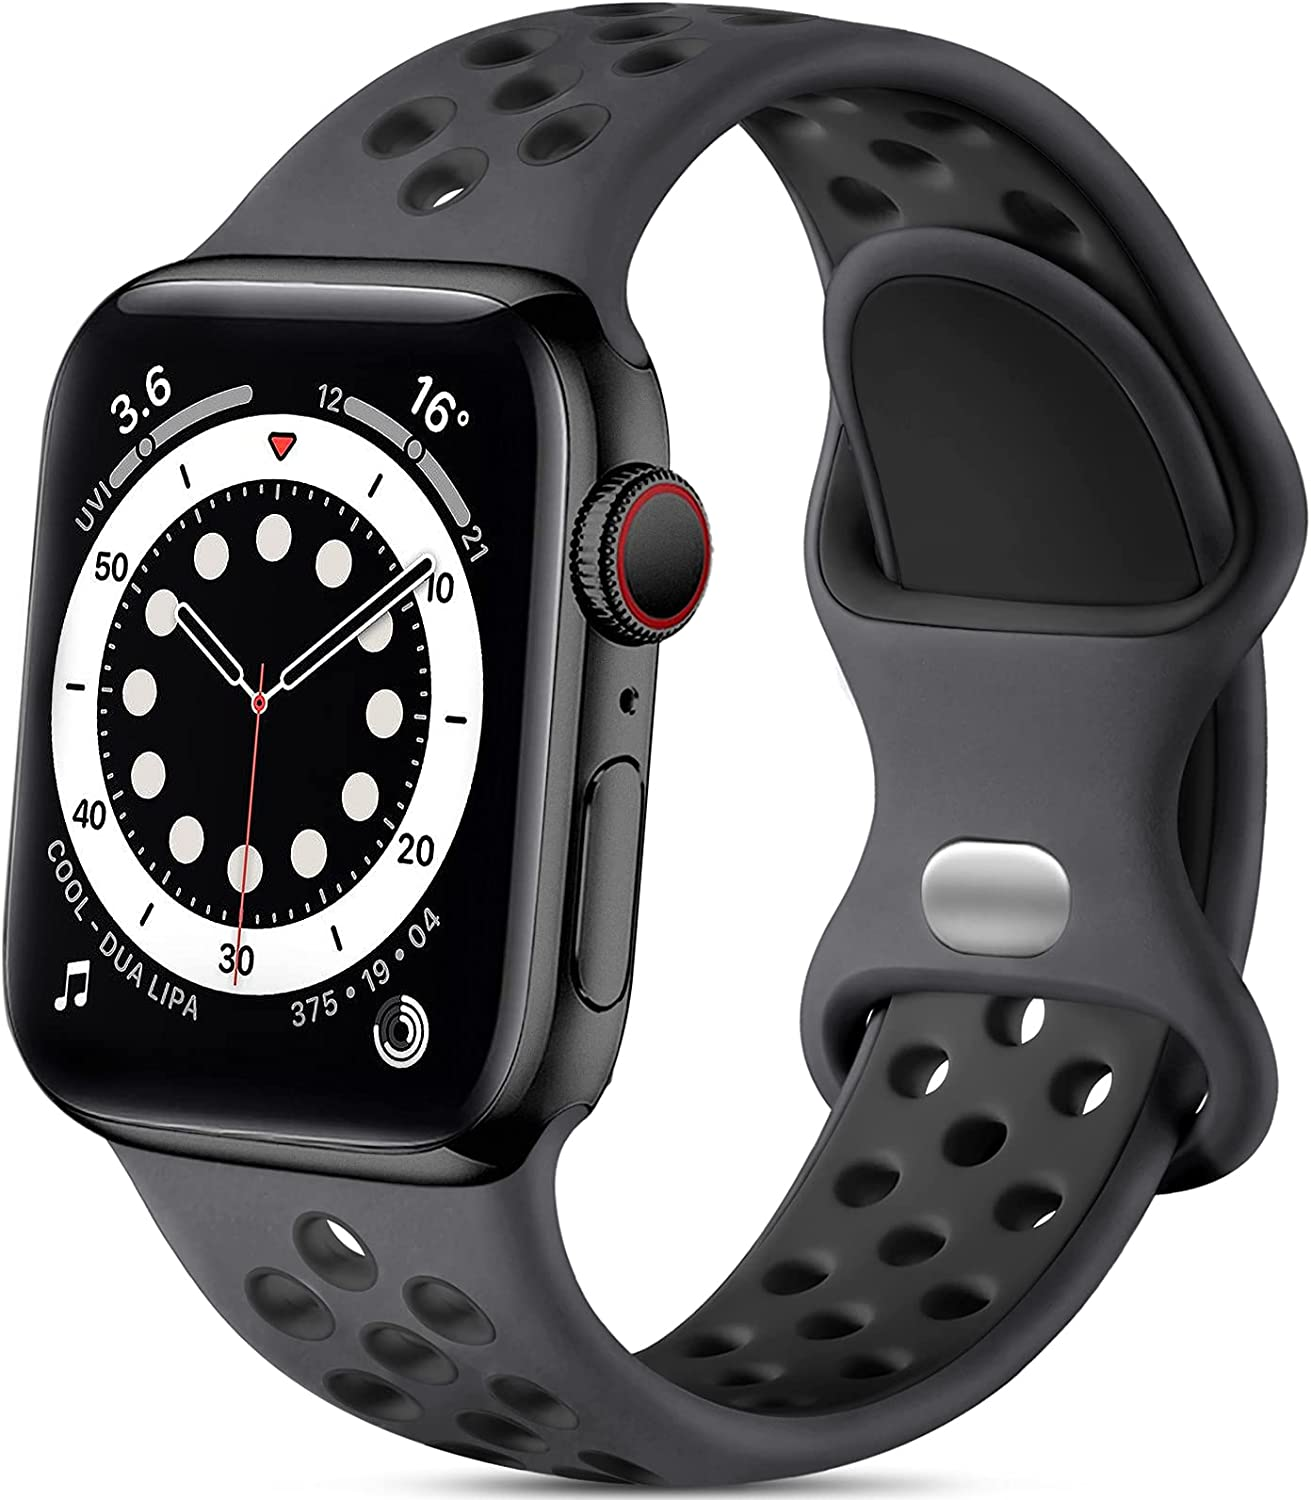 Lerobo Sport Bands Compatible with Apple Watch Band 44mm 42mm for Women Men, Soft Silicone Breathable Replacement Bands Compatible for Apple Watch SE iWatch Series 6 5 4 3 2 1, Anthracite Black, M/L